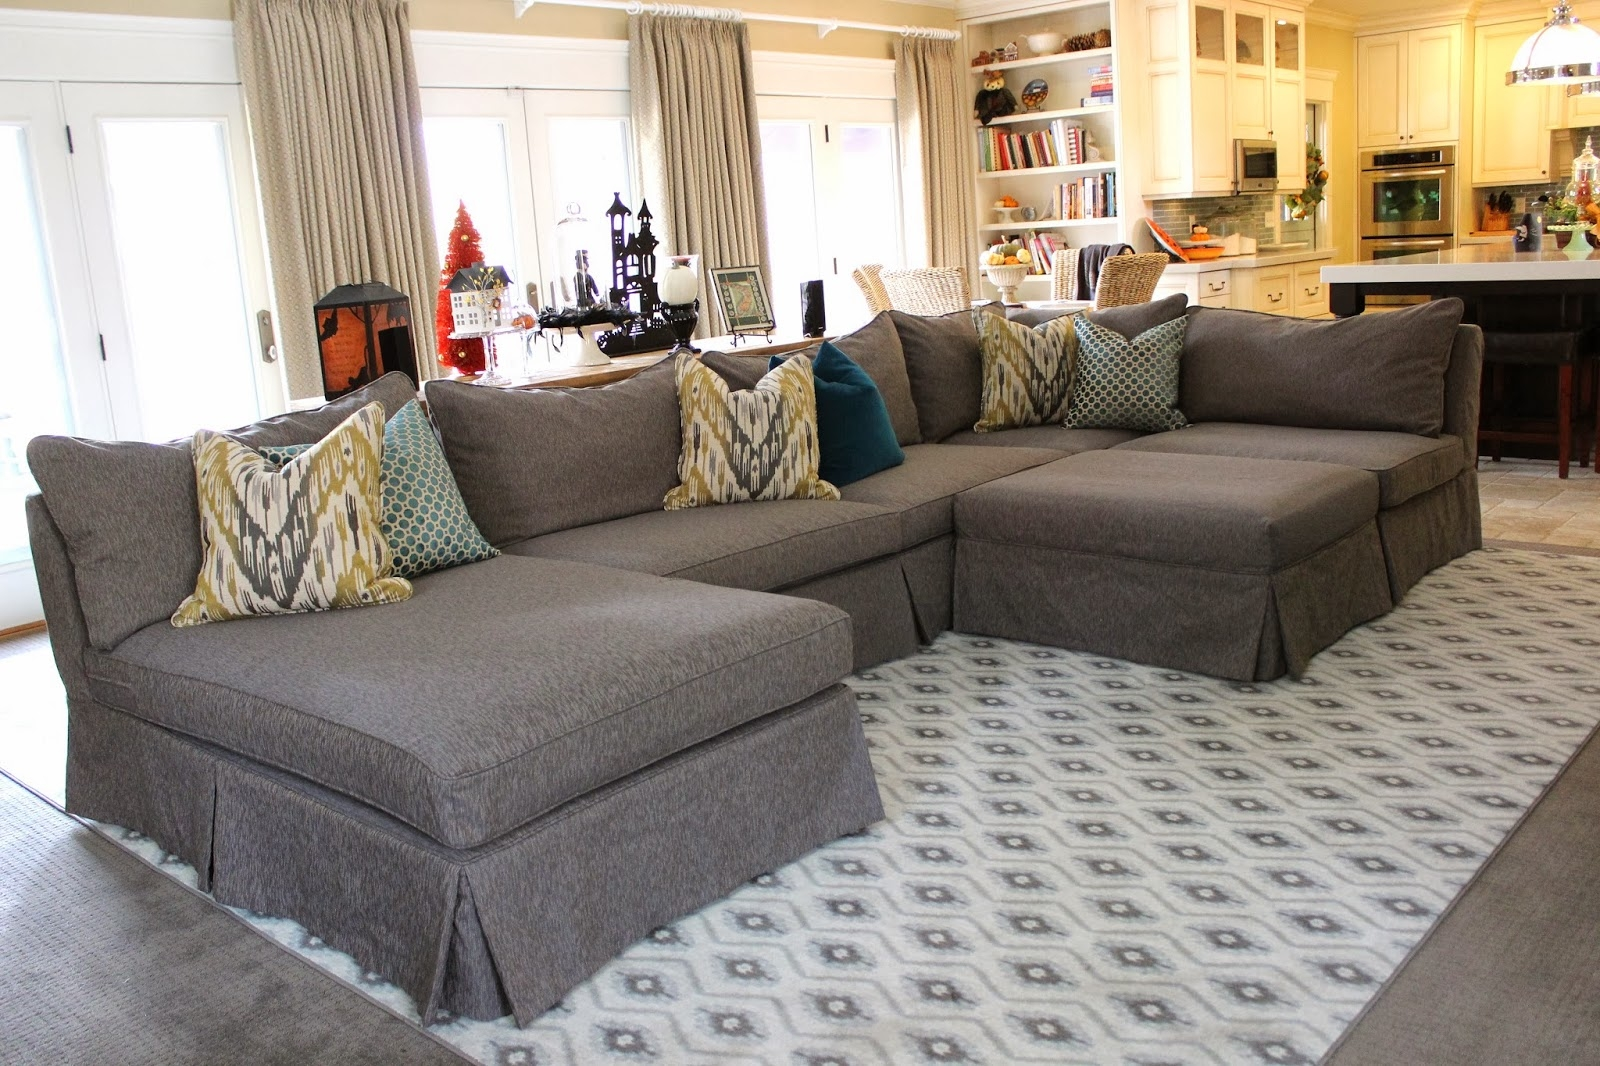 3 Piece Sectional Couch Covers Couches Furniture Gallery In 3 Piece Sectional Sofa Slipcovers (Image 2 of 15)